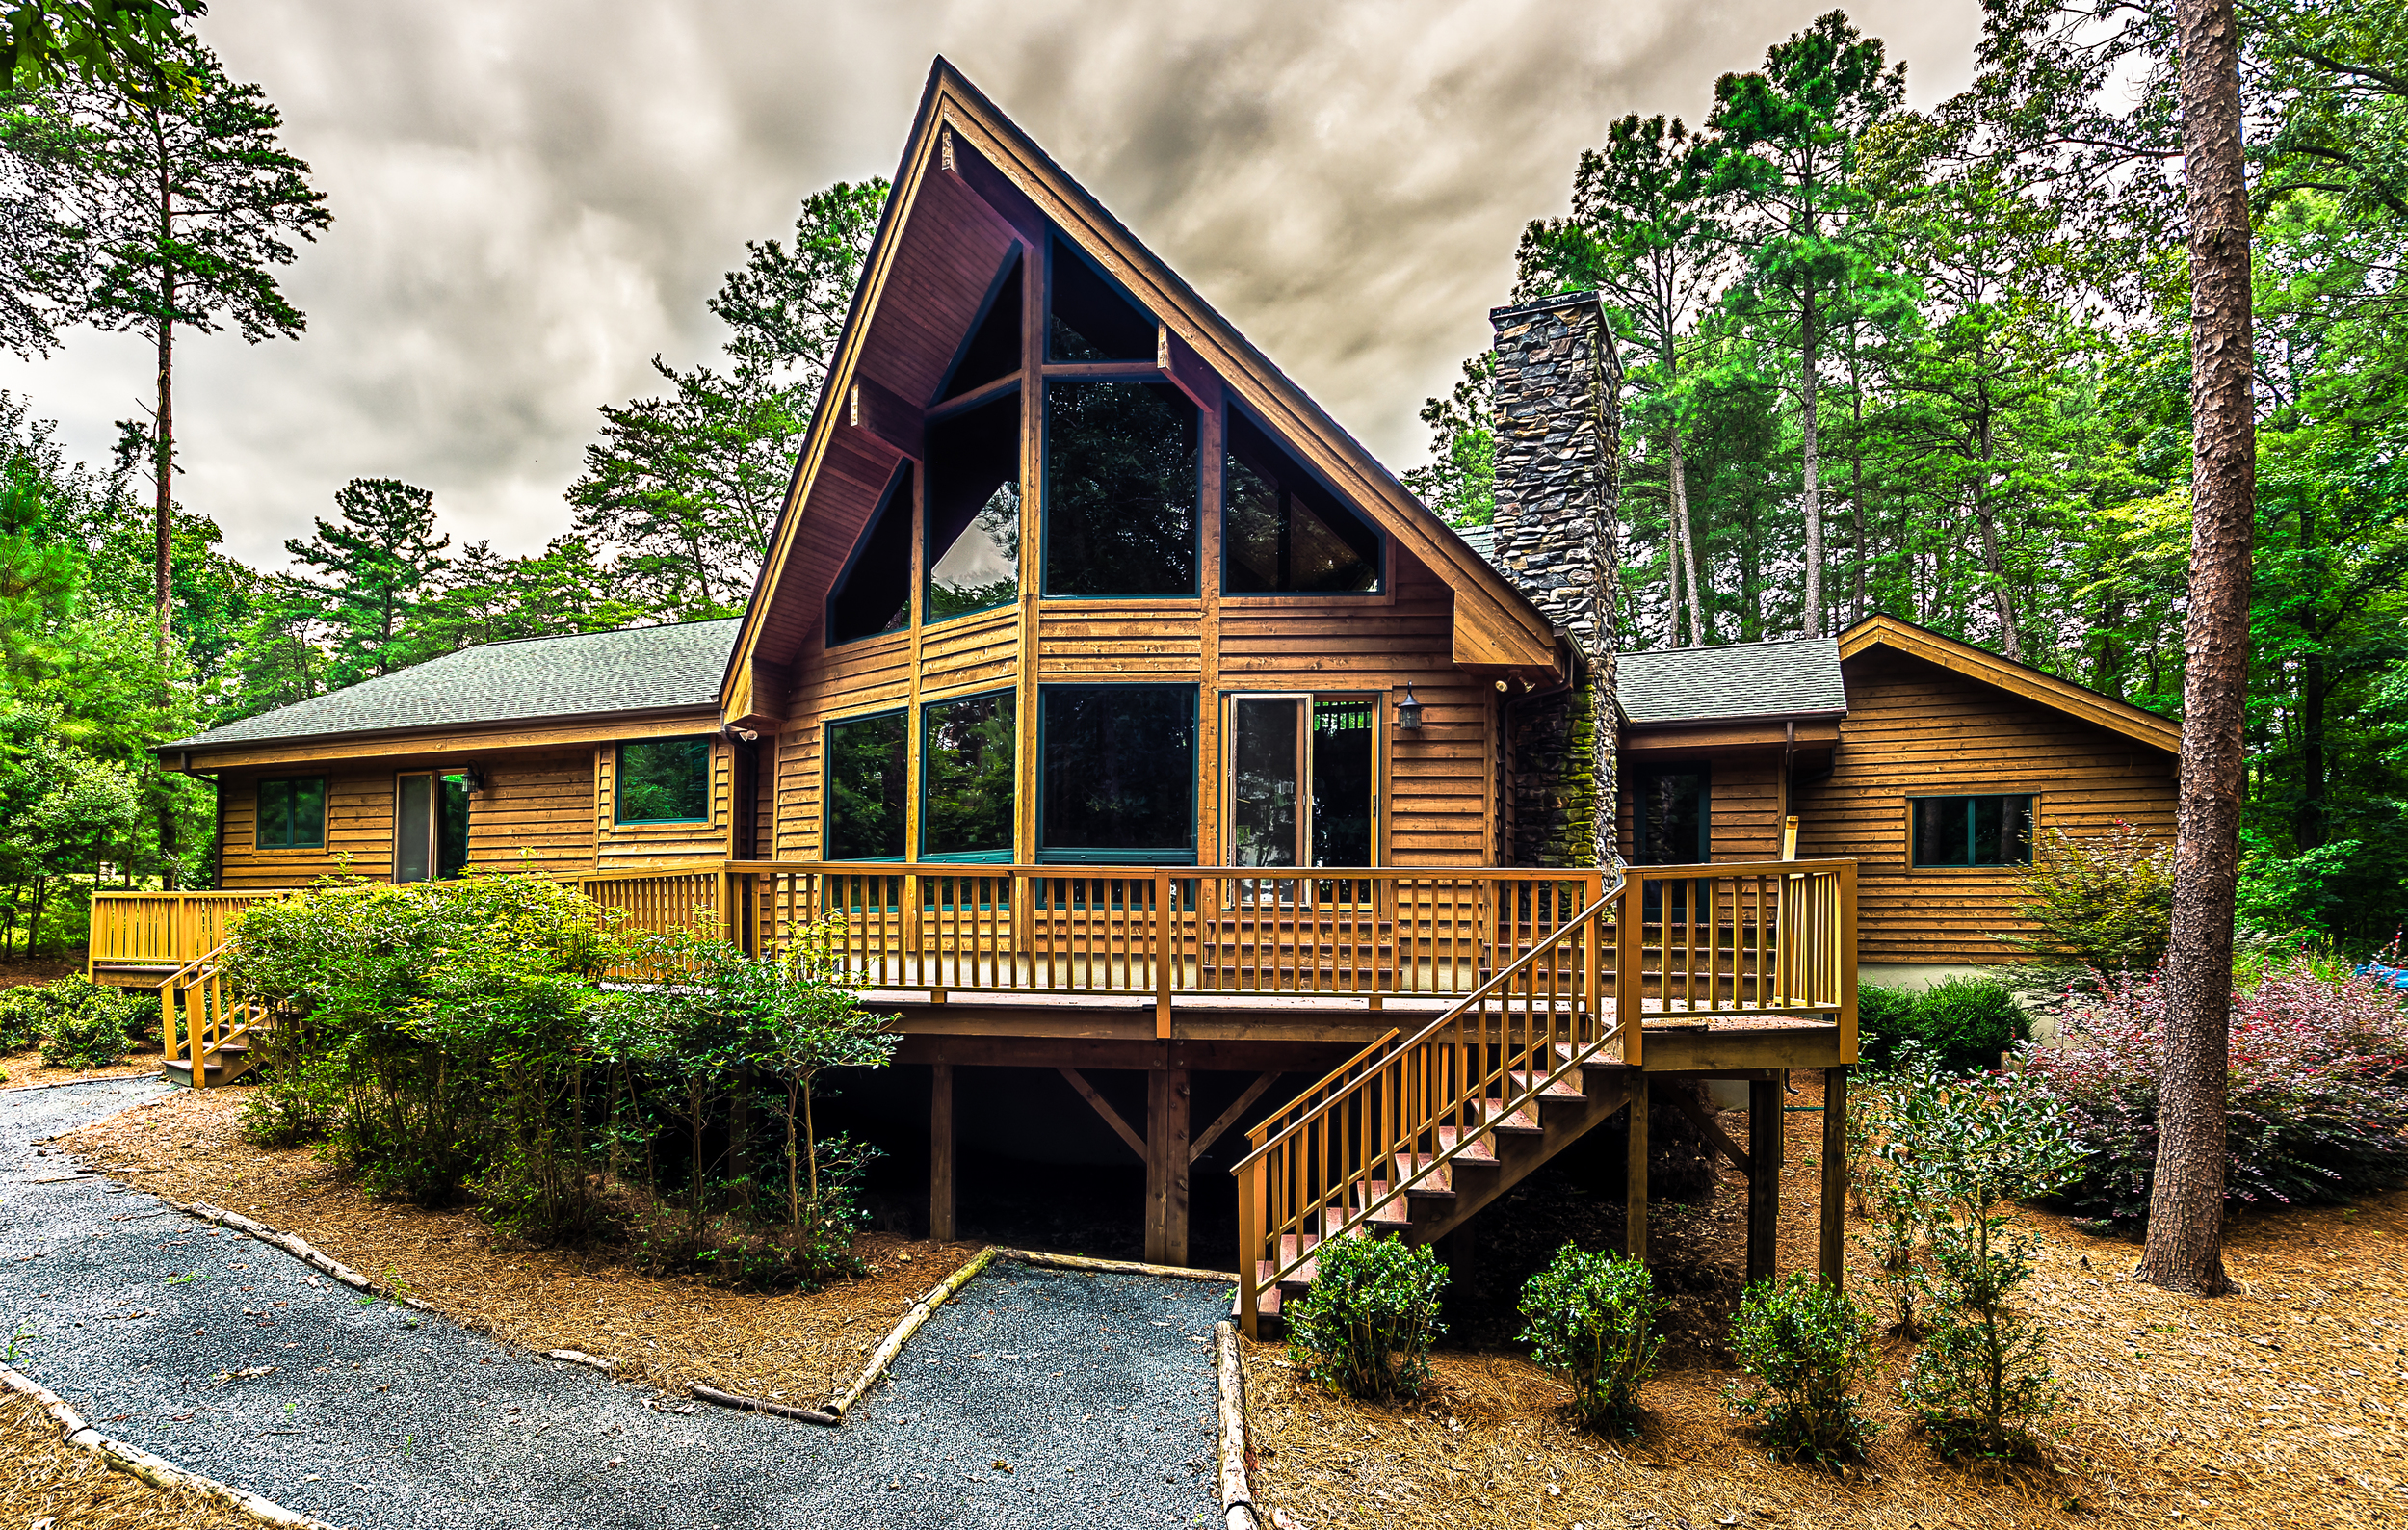 Post & Beam and Timber Truss - This home style is constructed with timber frames and traditional wooden joinery, which is left visible on the inside and outside to showcase its beautiful carpentry.